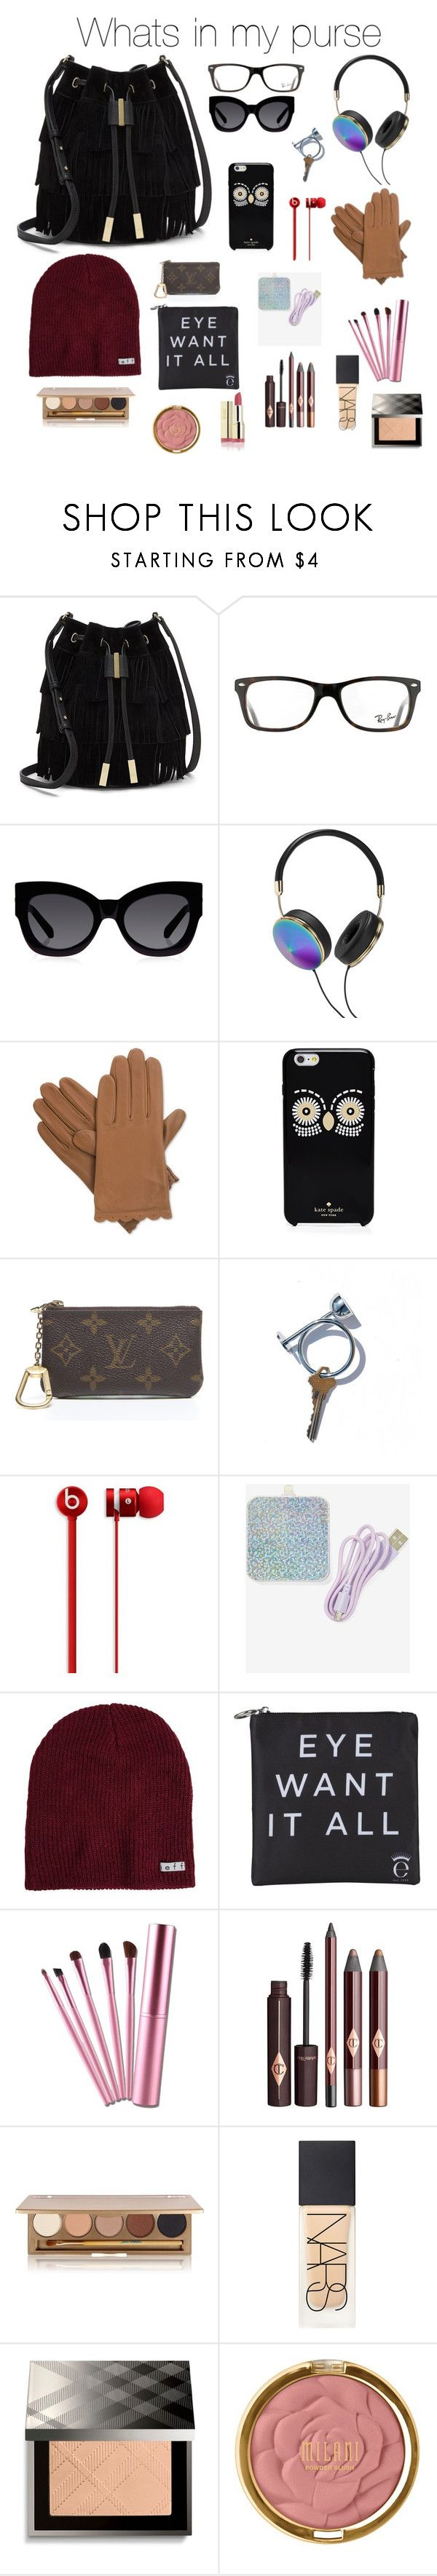 Whats in my purse by gabriellaallen on Polyvore featuring Vince Camuto, Louis Vuitton, Neff, Isotoner, Kate Spade, Karen Walker, Ray-Ban, Jane Iredale, Burberry and Milani